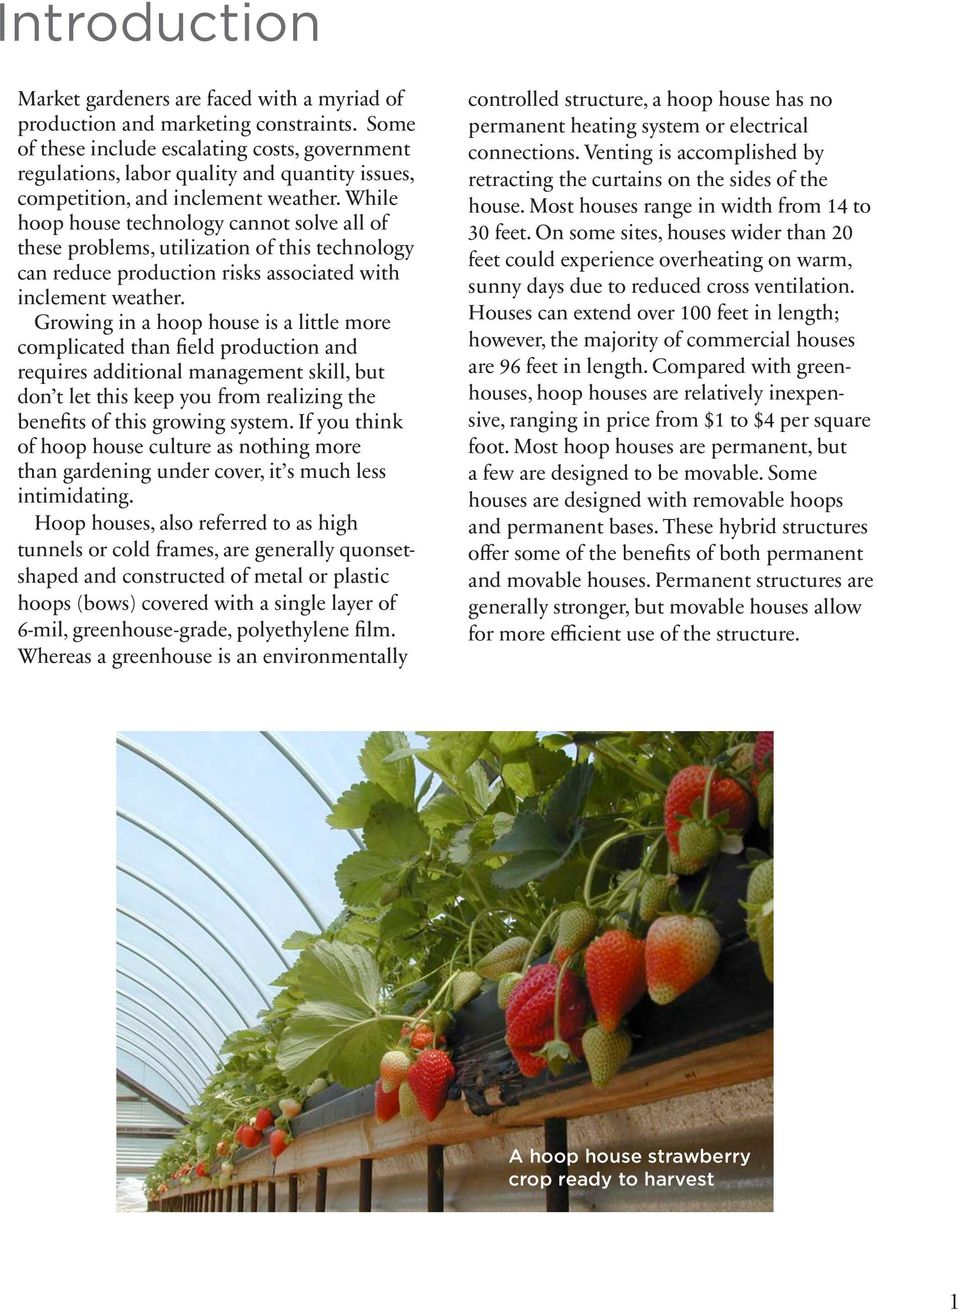 While hoop house technology cannot solve all of these problems, utilization of this technology can reduce production risks associated with inclement weather.